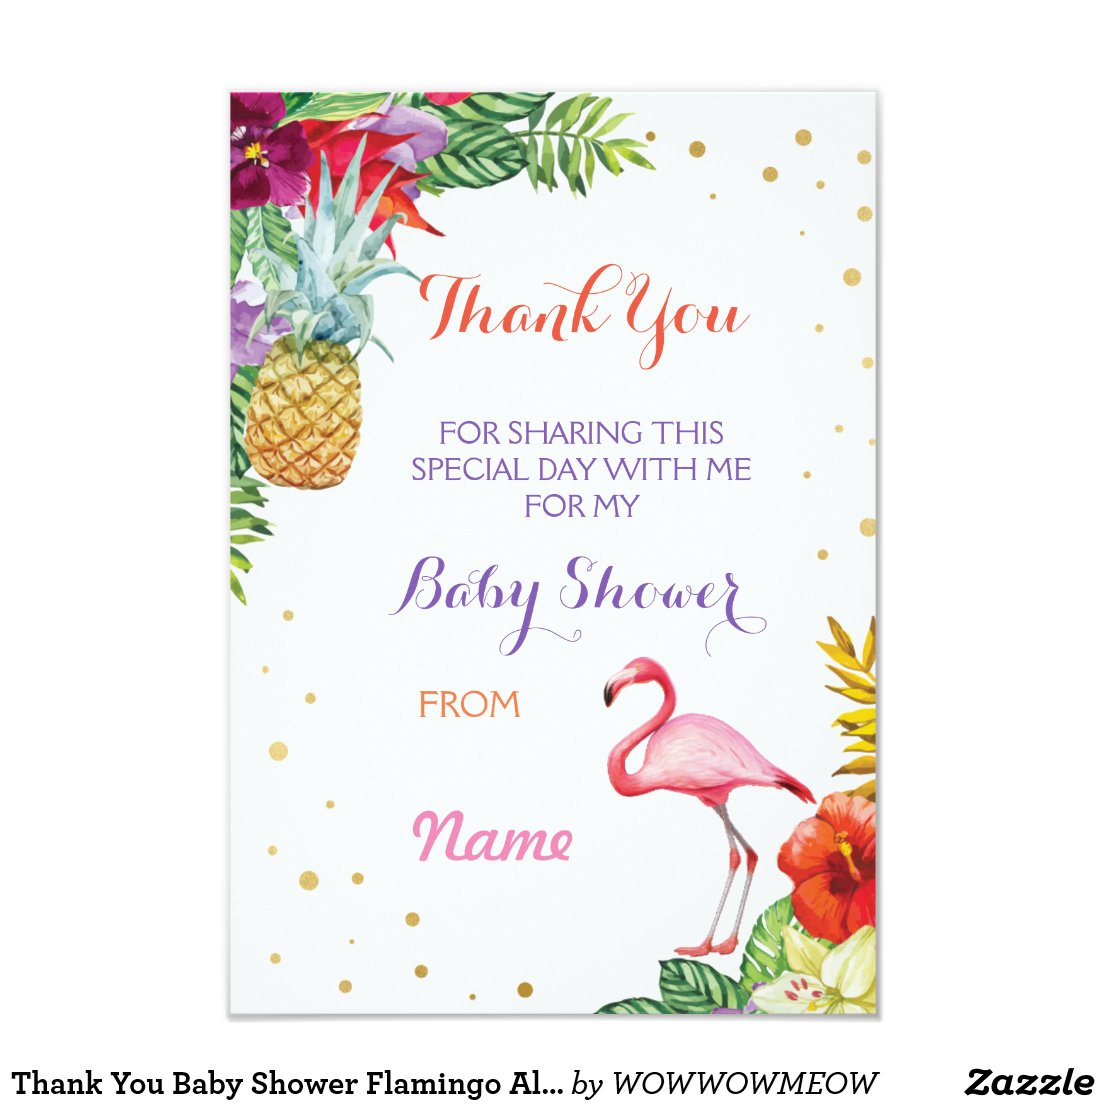 Thank You Baby Shower Flamingo Aloha Luau Cards